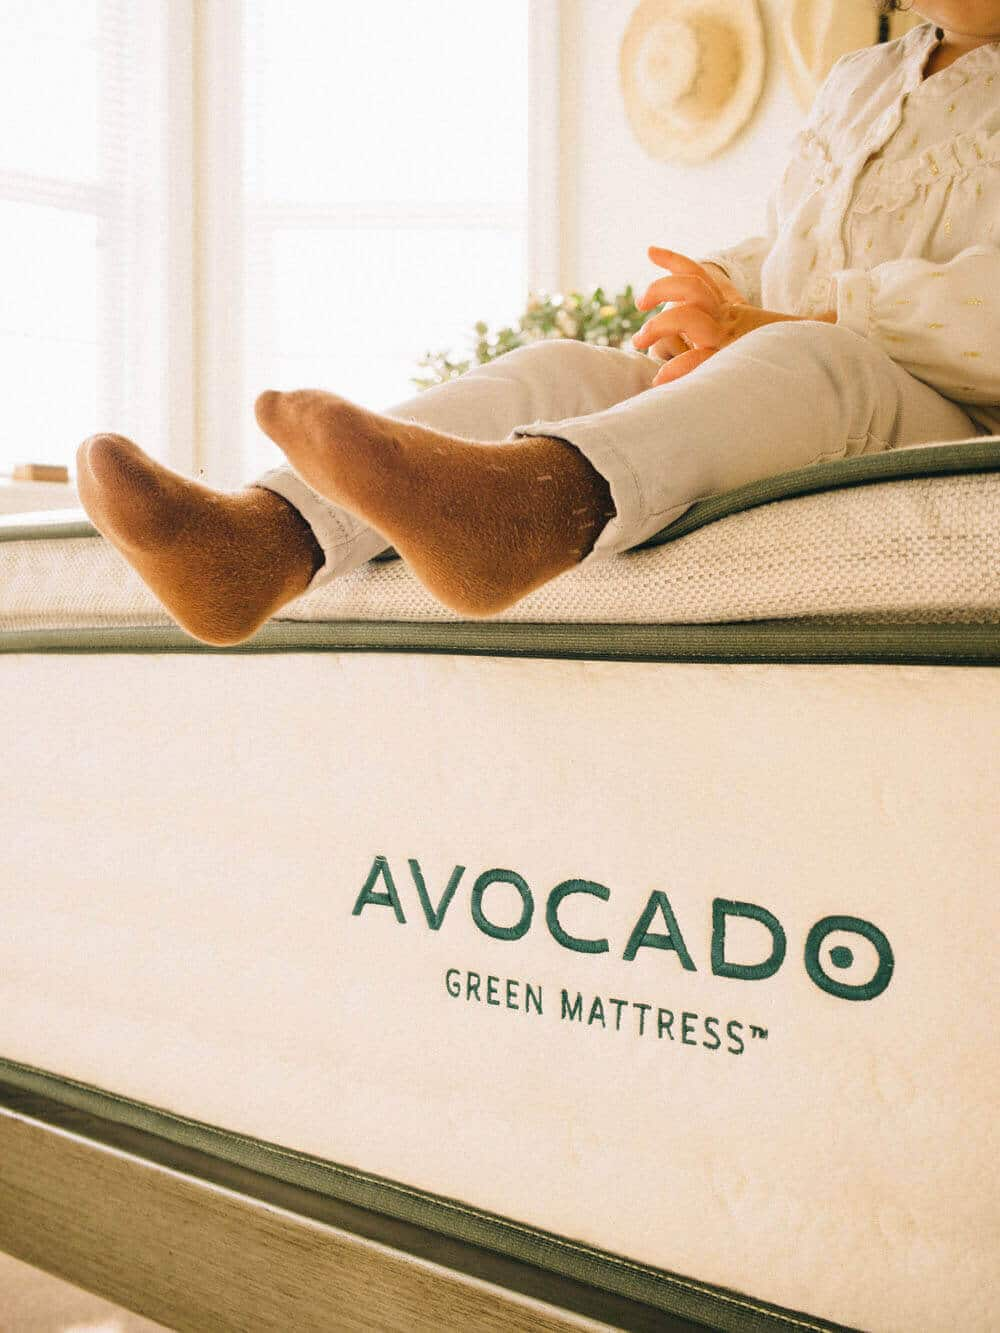 A Natural and Non-Toxic Mattress From Avocado Green Mattress | Garden Betty